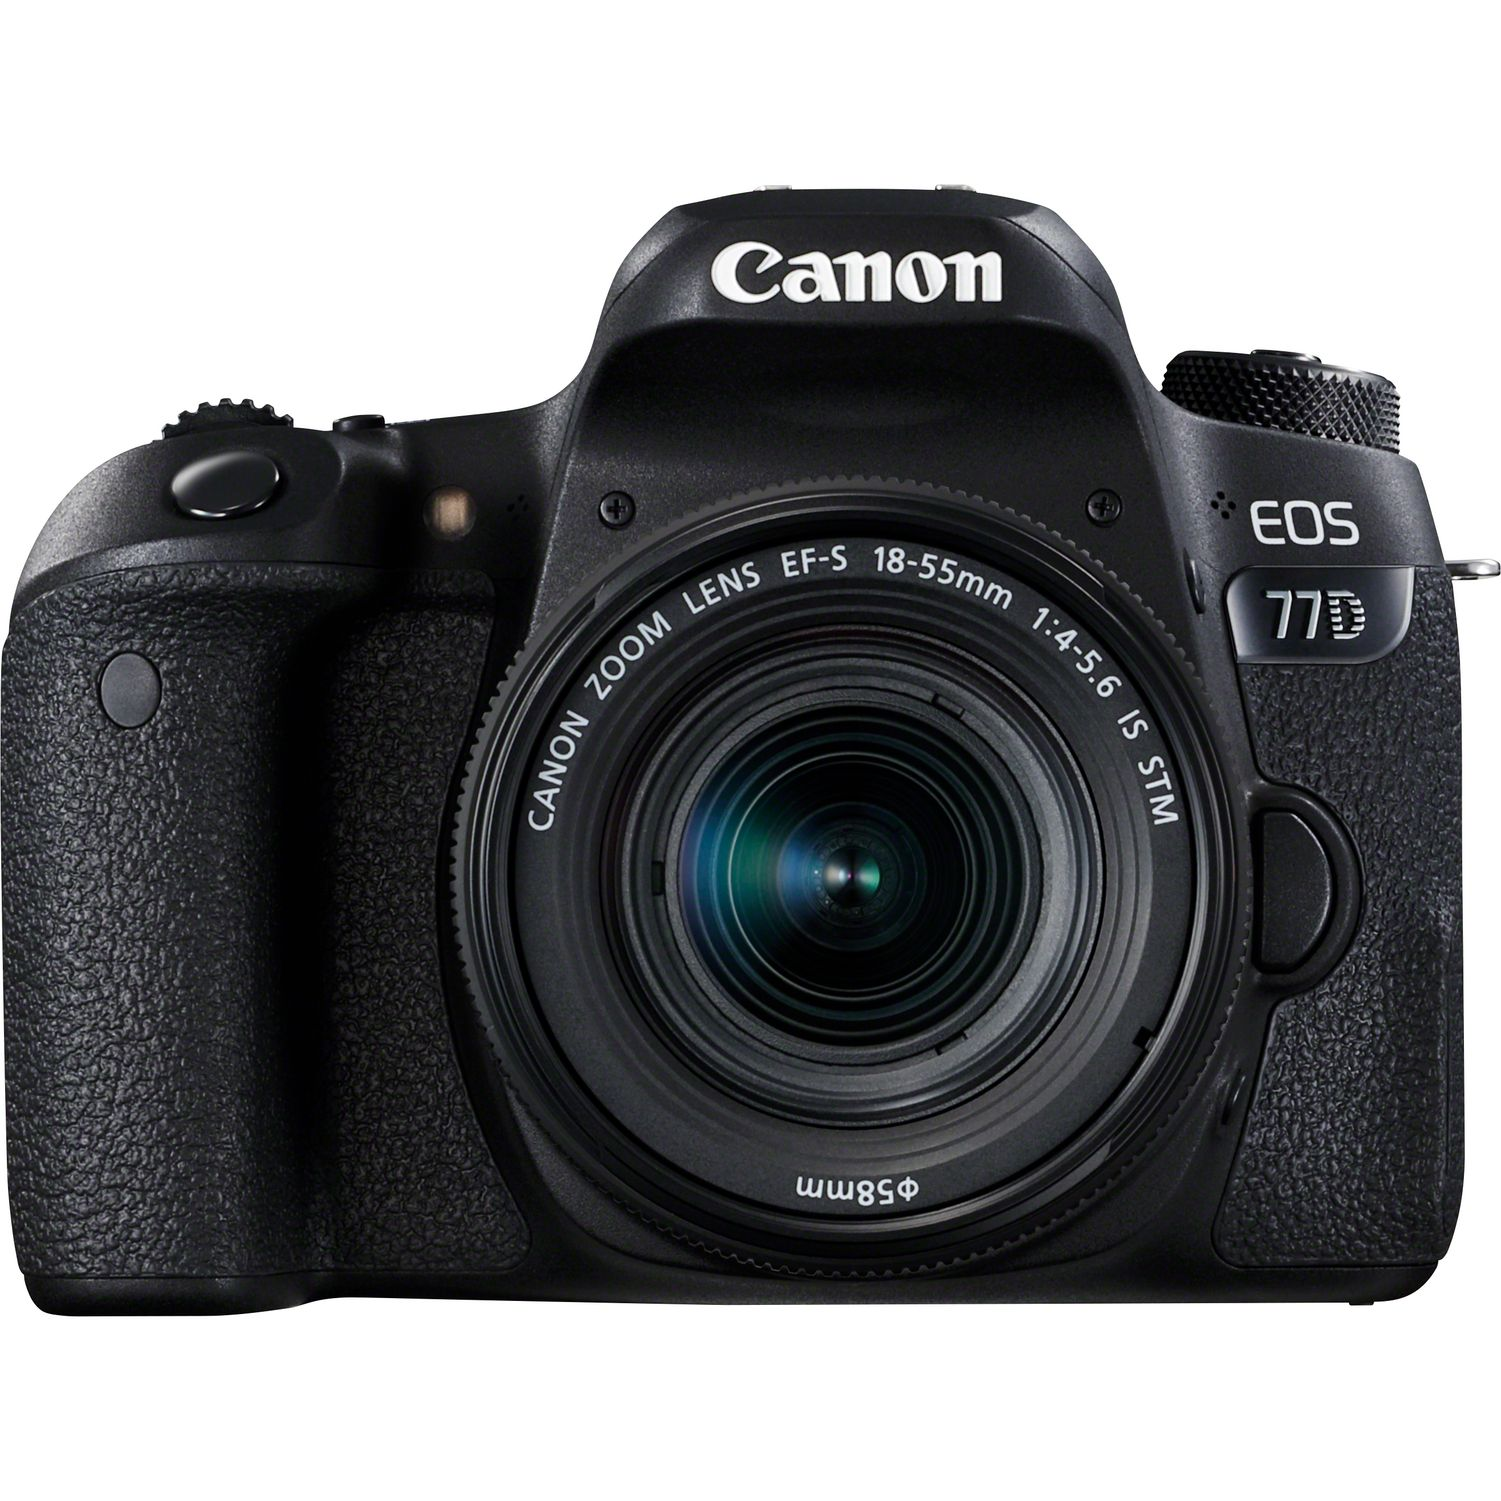 Canon EOS 77D e EF-S 18-55mm f/4-5.6 IS STM